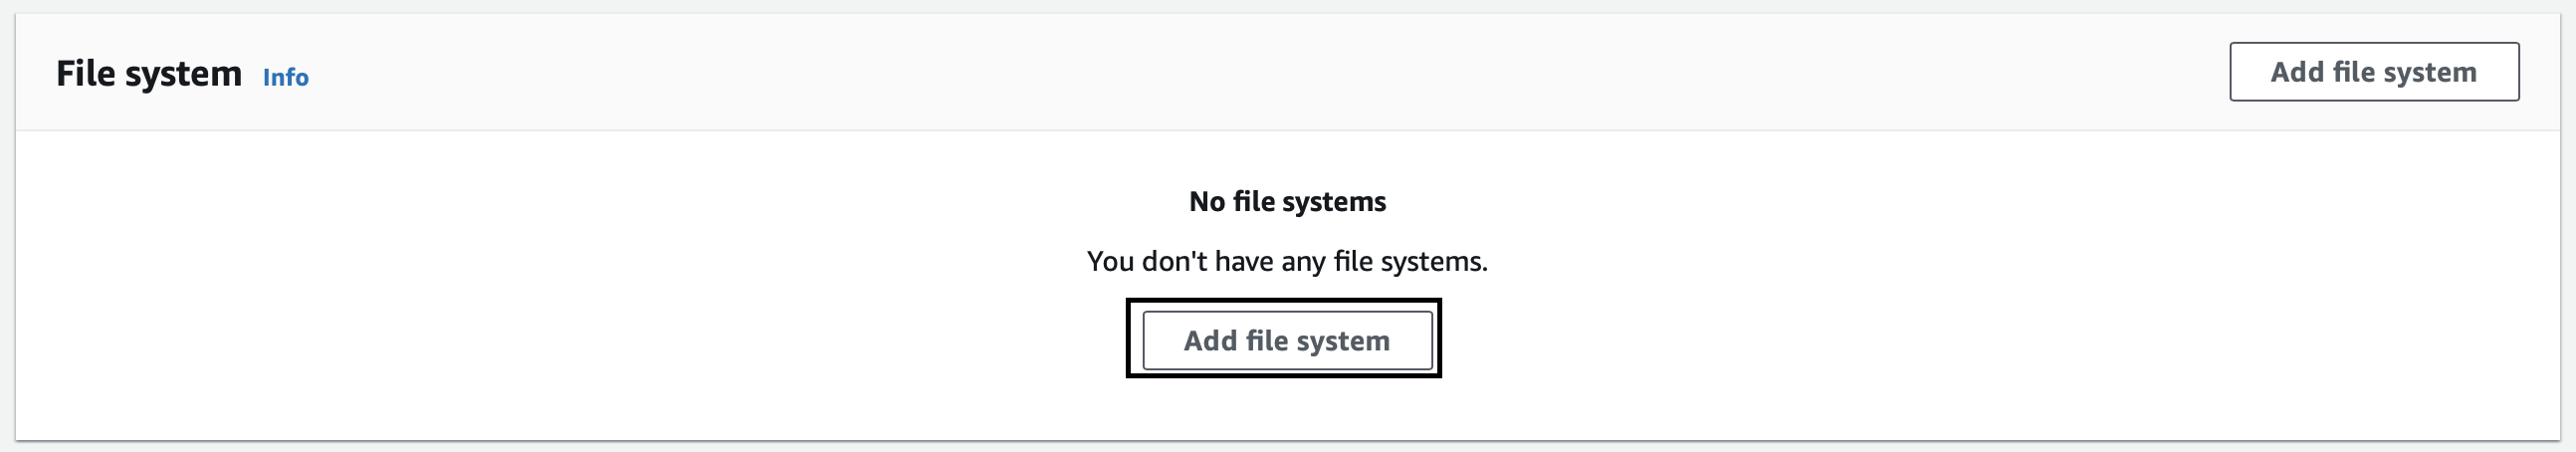 Adding a file system